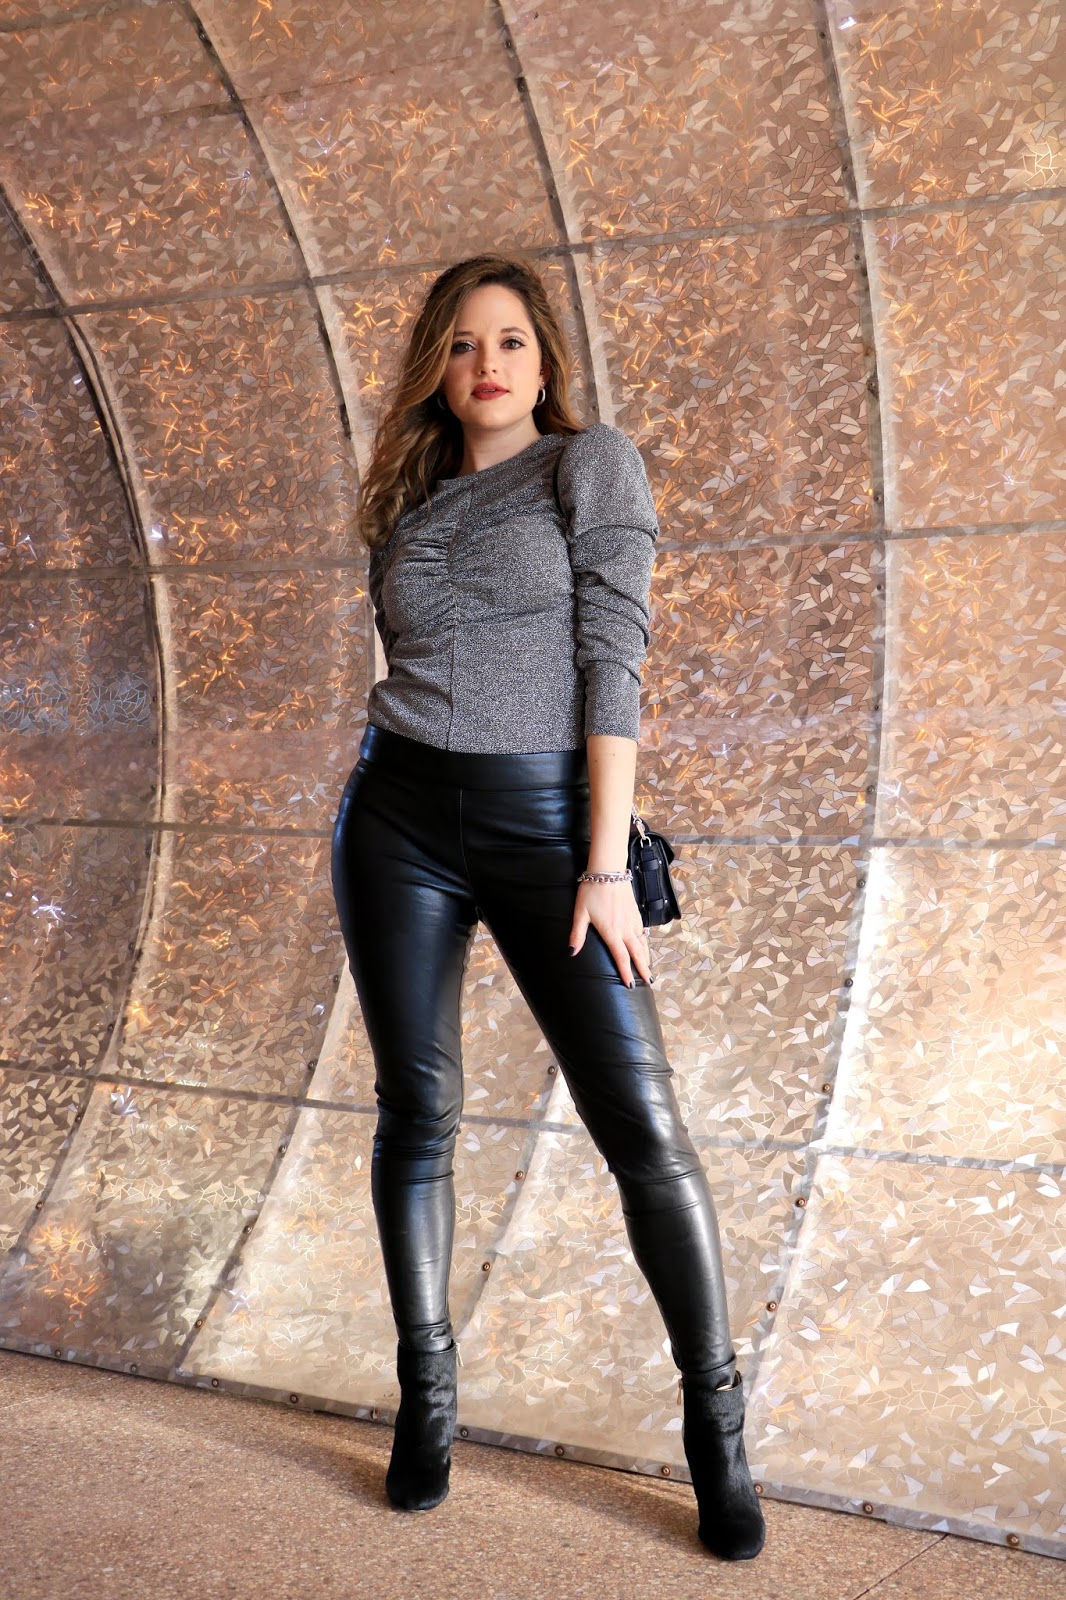 Nyc fashion blogger Kathleen Harper wearing a leather leggings outfit.